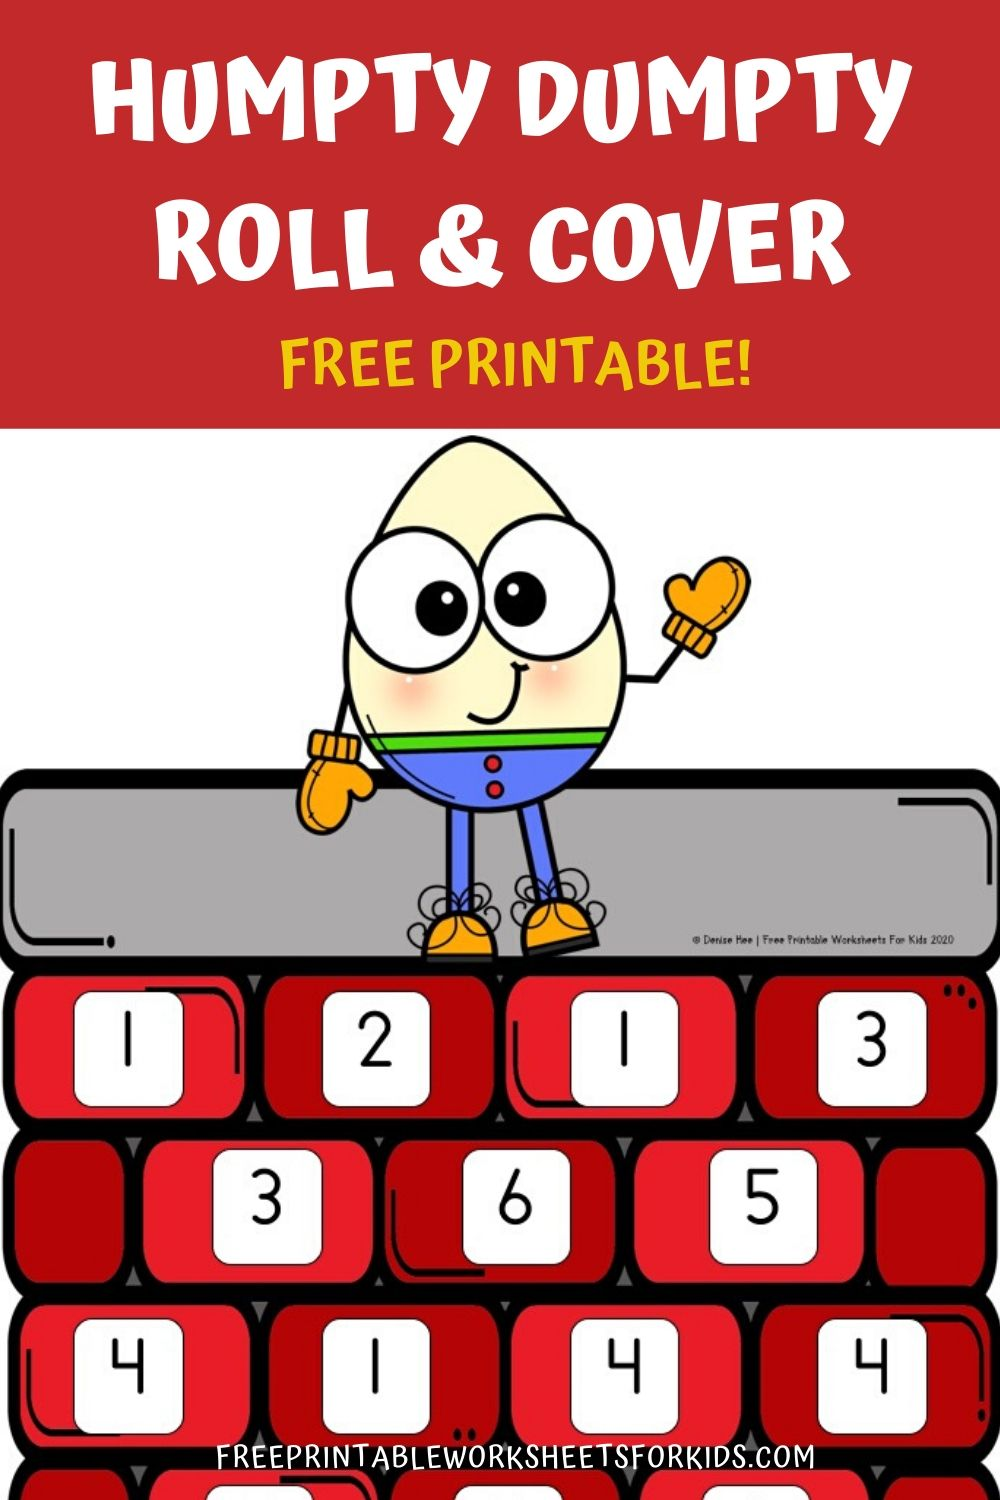 Fun Nursery Rhyme Printables for Preschool and Kindergarten | Humpty Dumpty Themed Number Games | Hands On Math Homeschool Activities | Kids Classroom Center Ideas and Worksheets #FreePrintableWorksheetsForKids #nurseryrhyme #song #humptydumpty #number #rollandcover